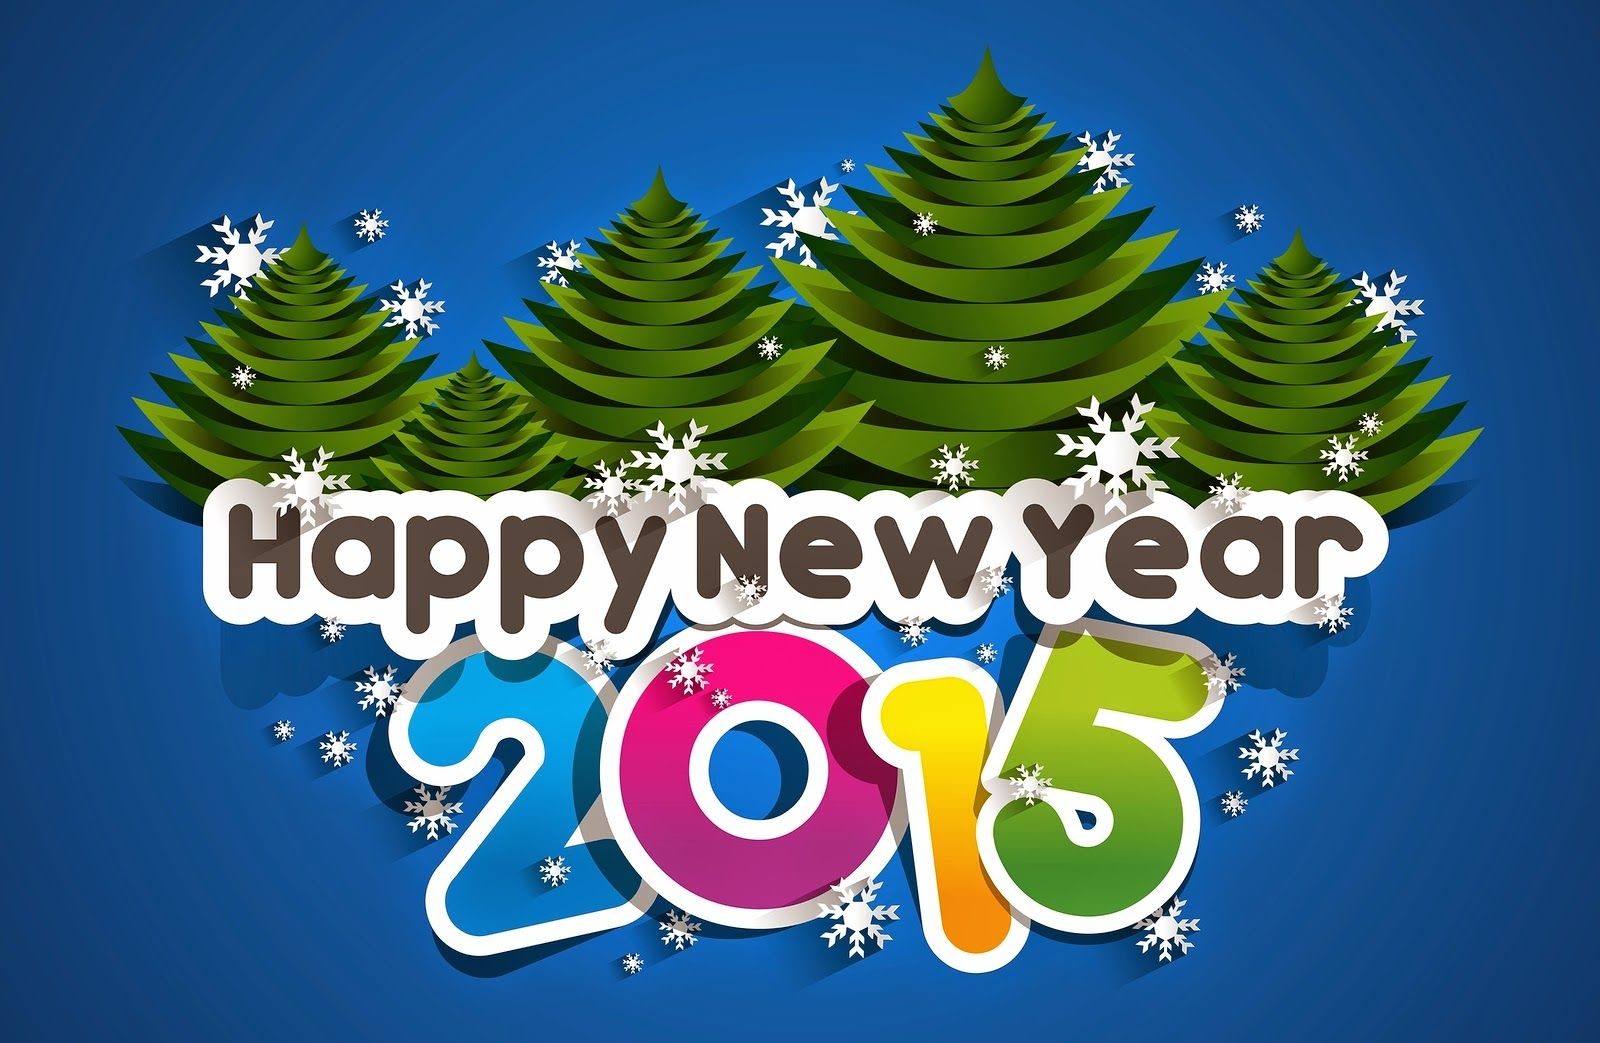 download happy new year 2015 images , photos and wallpapers